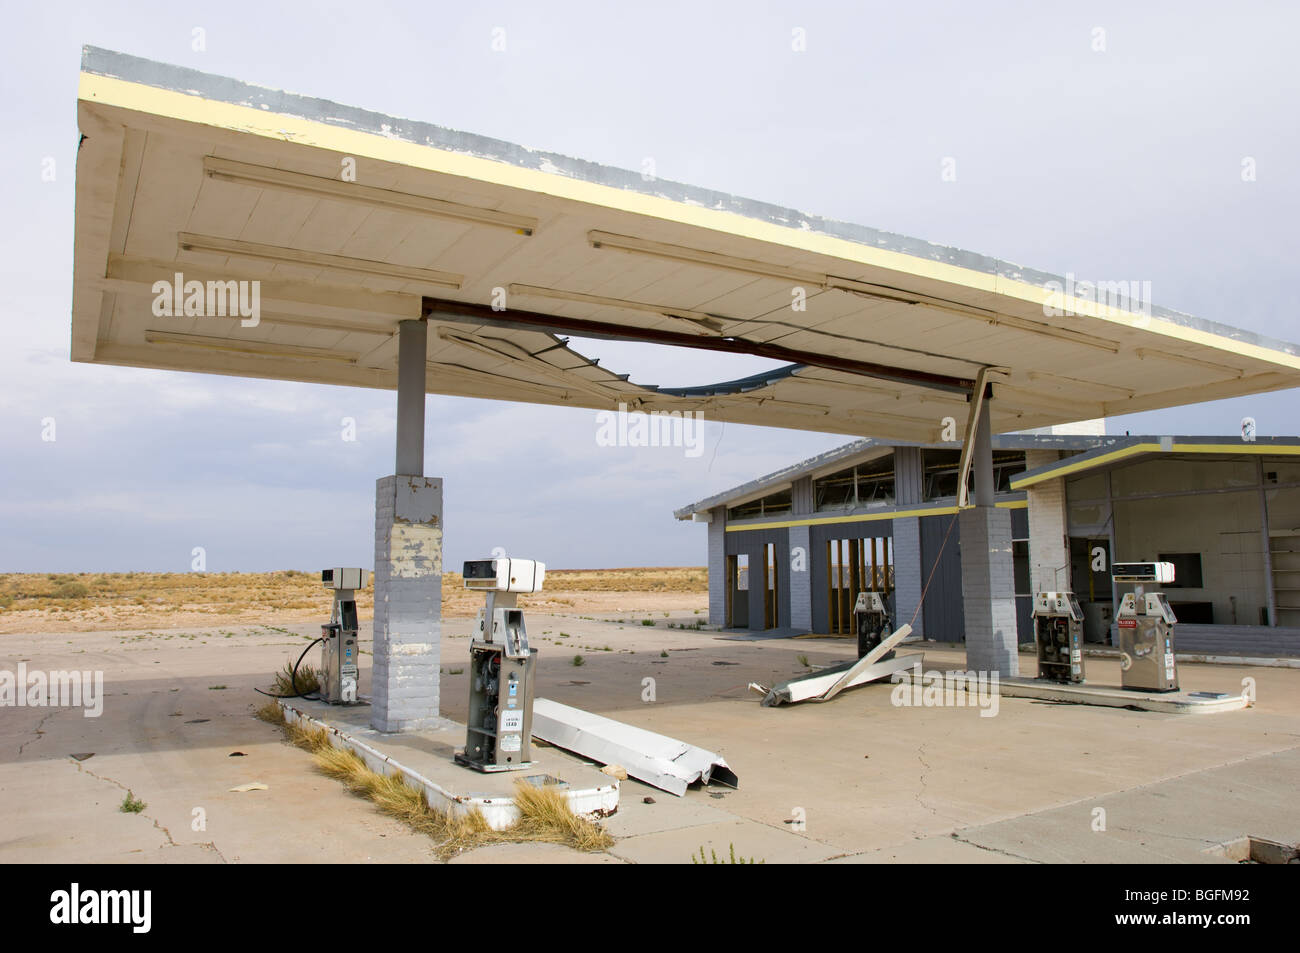 Abandoned Gas Station In The Ghost Town Of Two Guns Arizona On Stock Photo Alamy